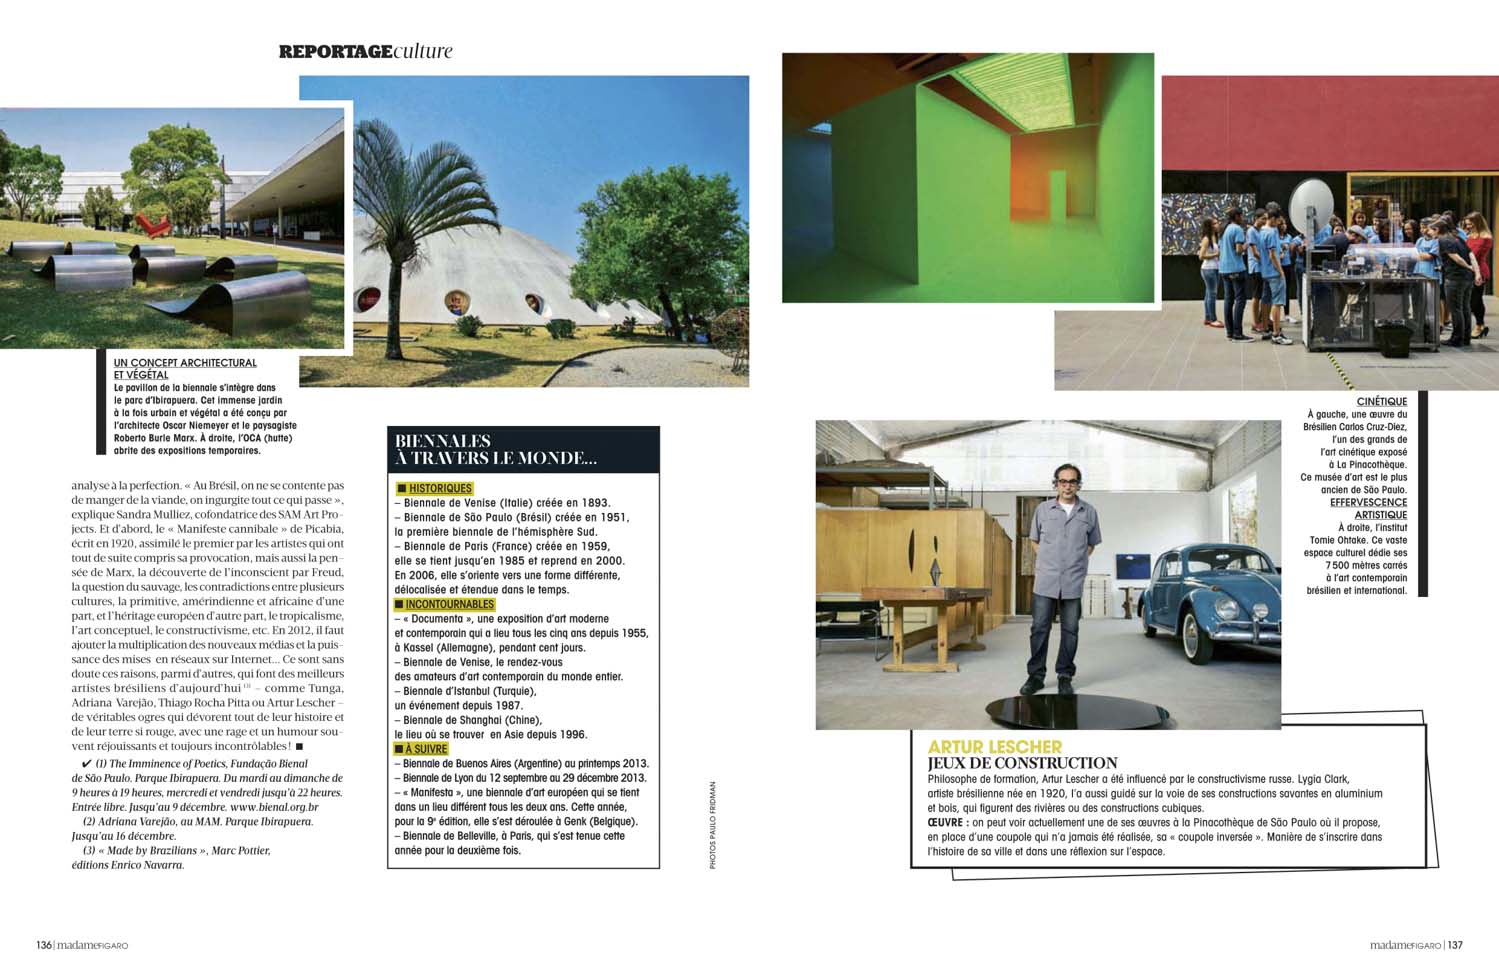 Madame Figaro, France, reportage on Sao Paulo;s Art and Bienal